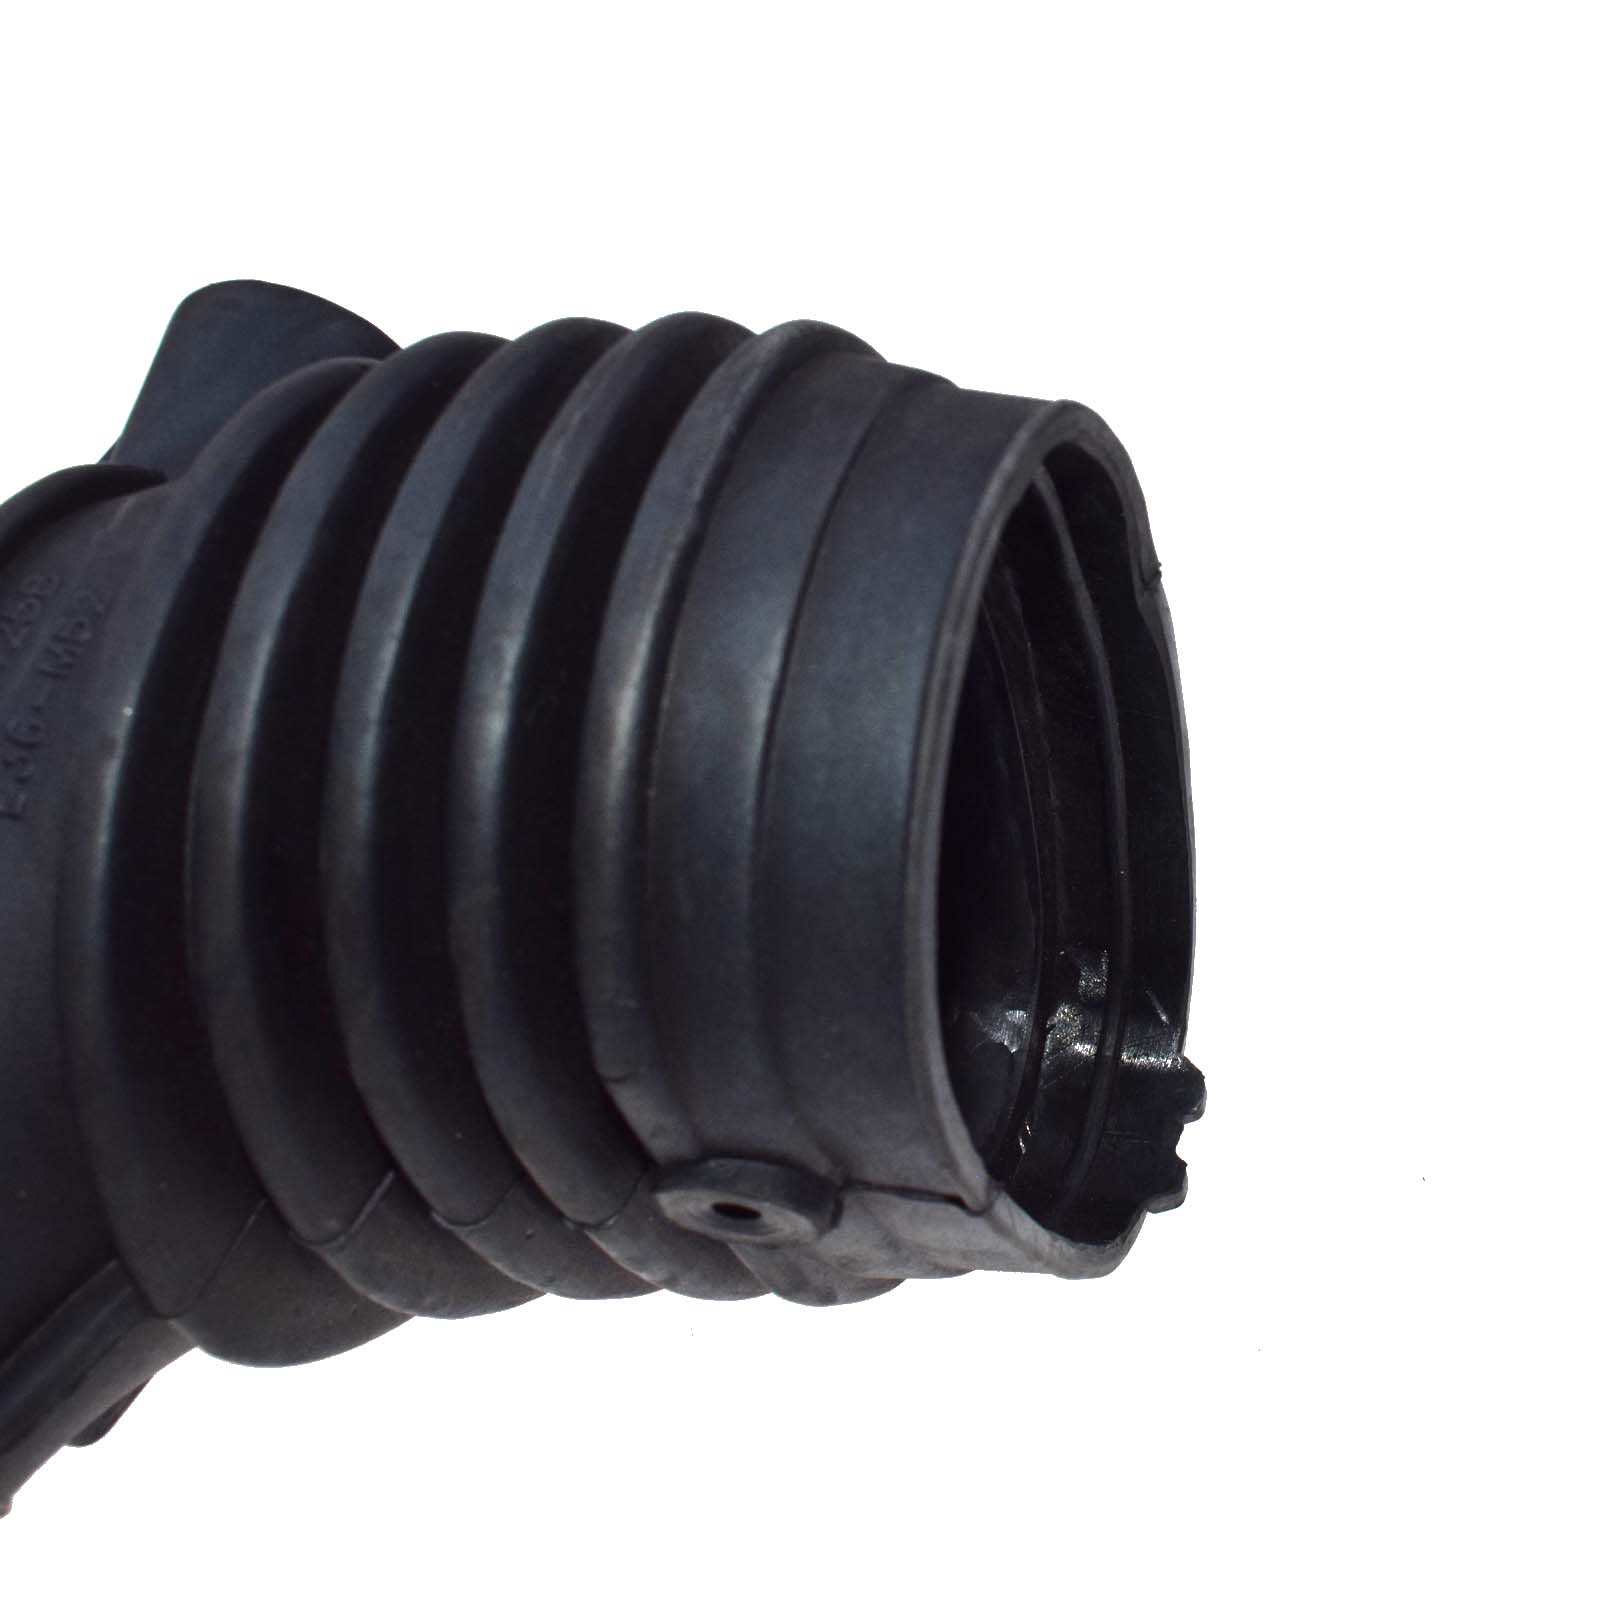 Air Intake Hose For 1992-1995 BMW 318is 318ti 318is E36 L4 1.8L 13711247829